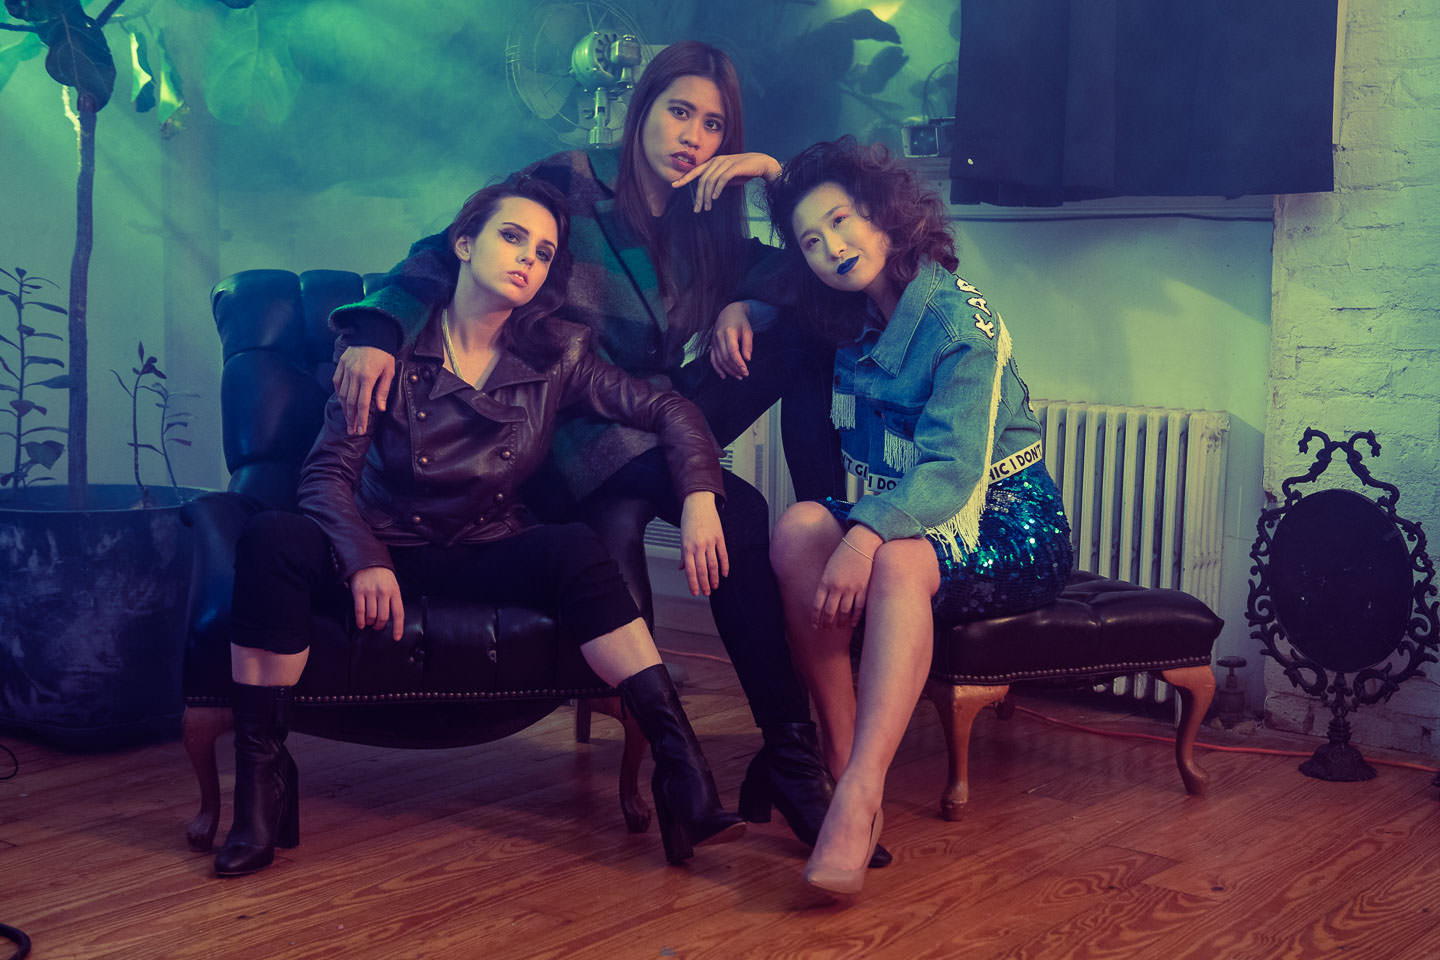 three girl models pose on couch with smoke and a green background